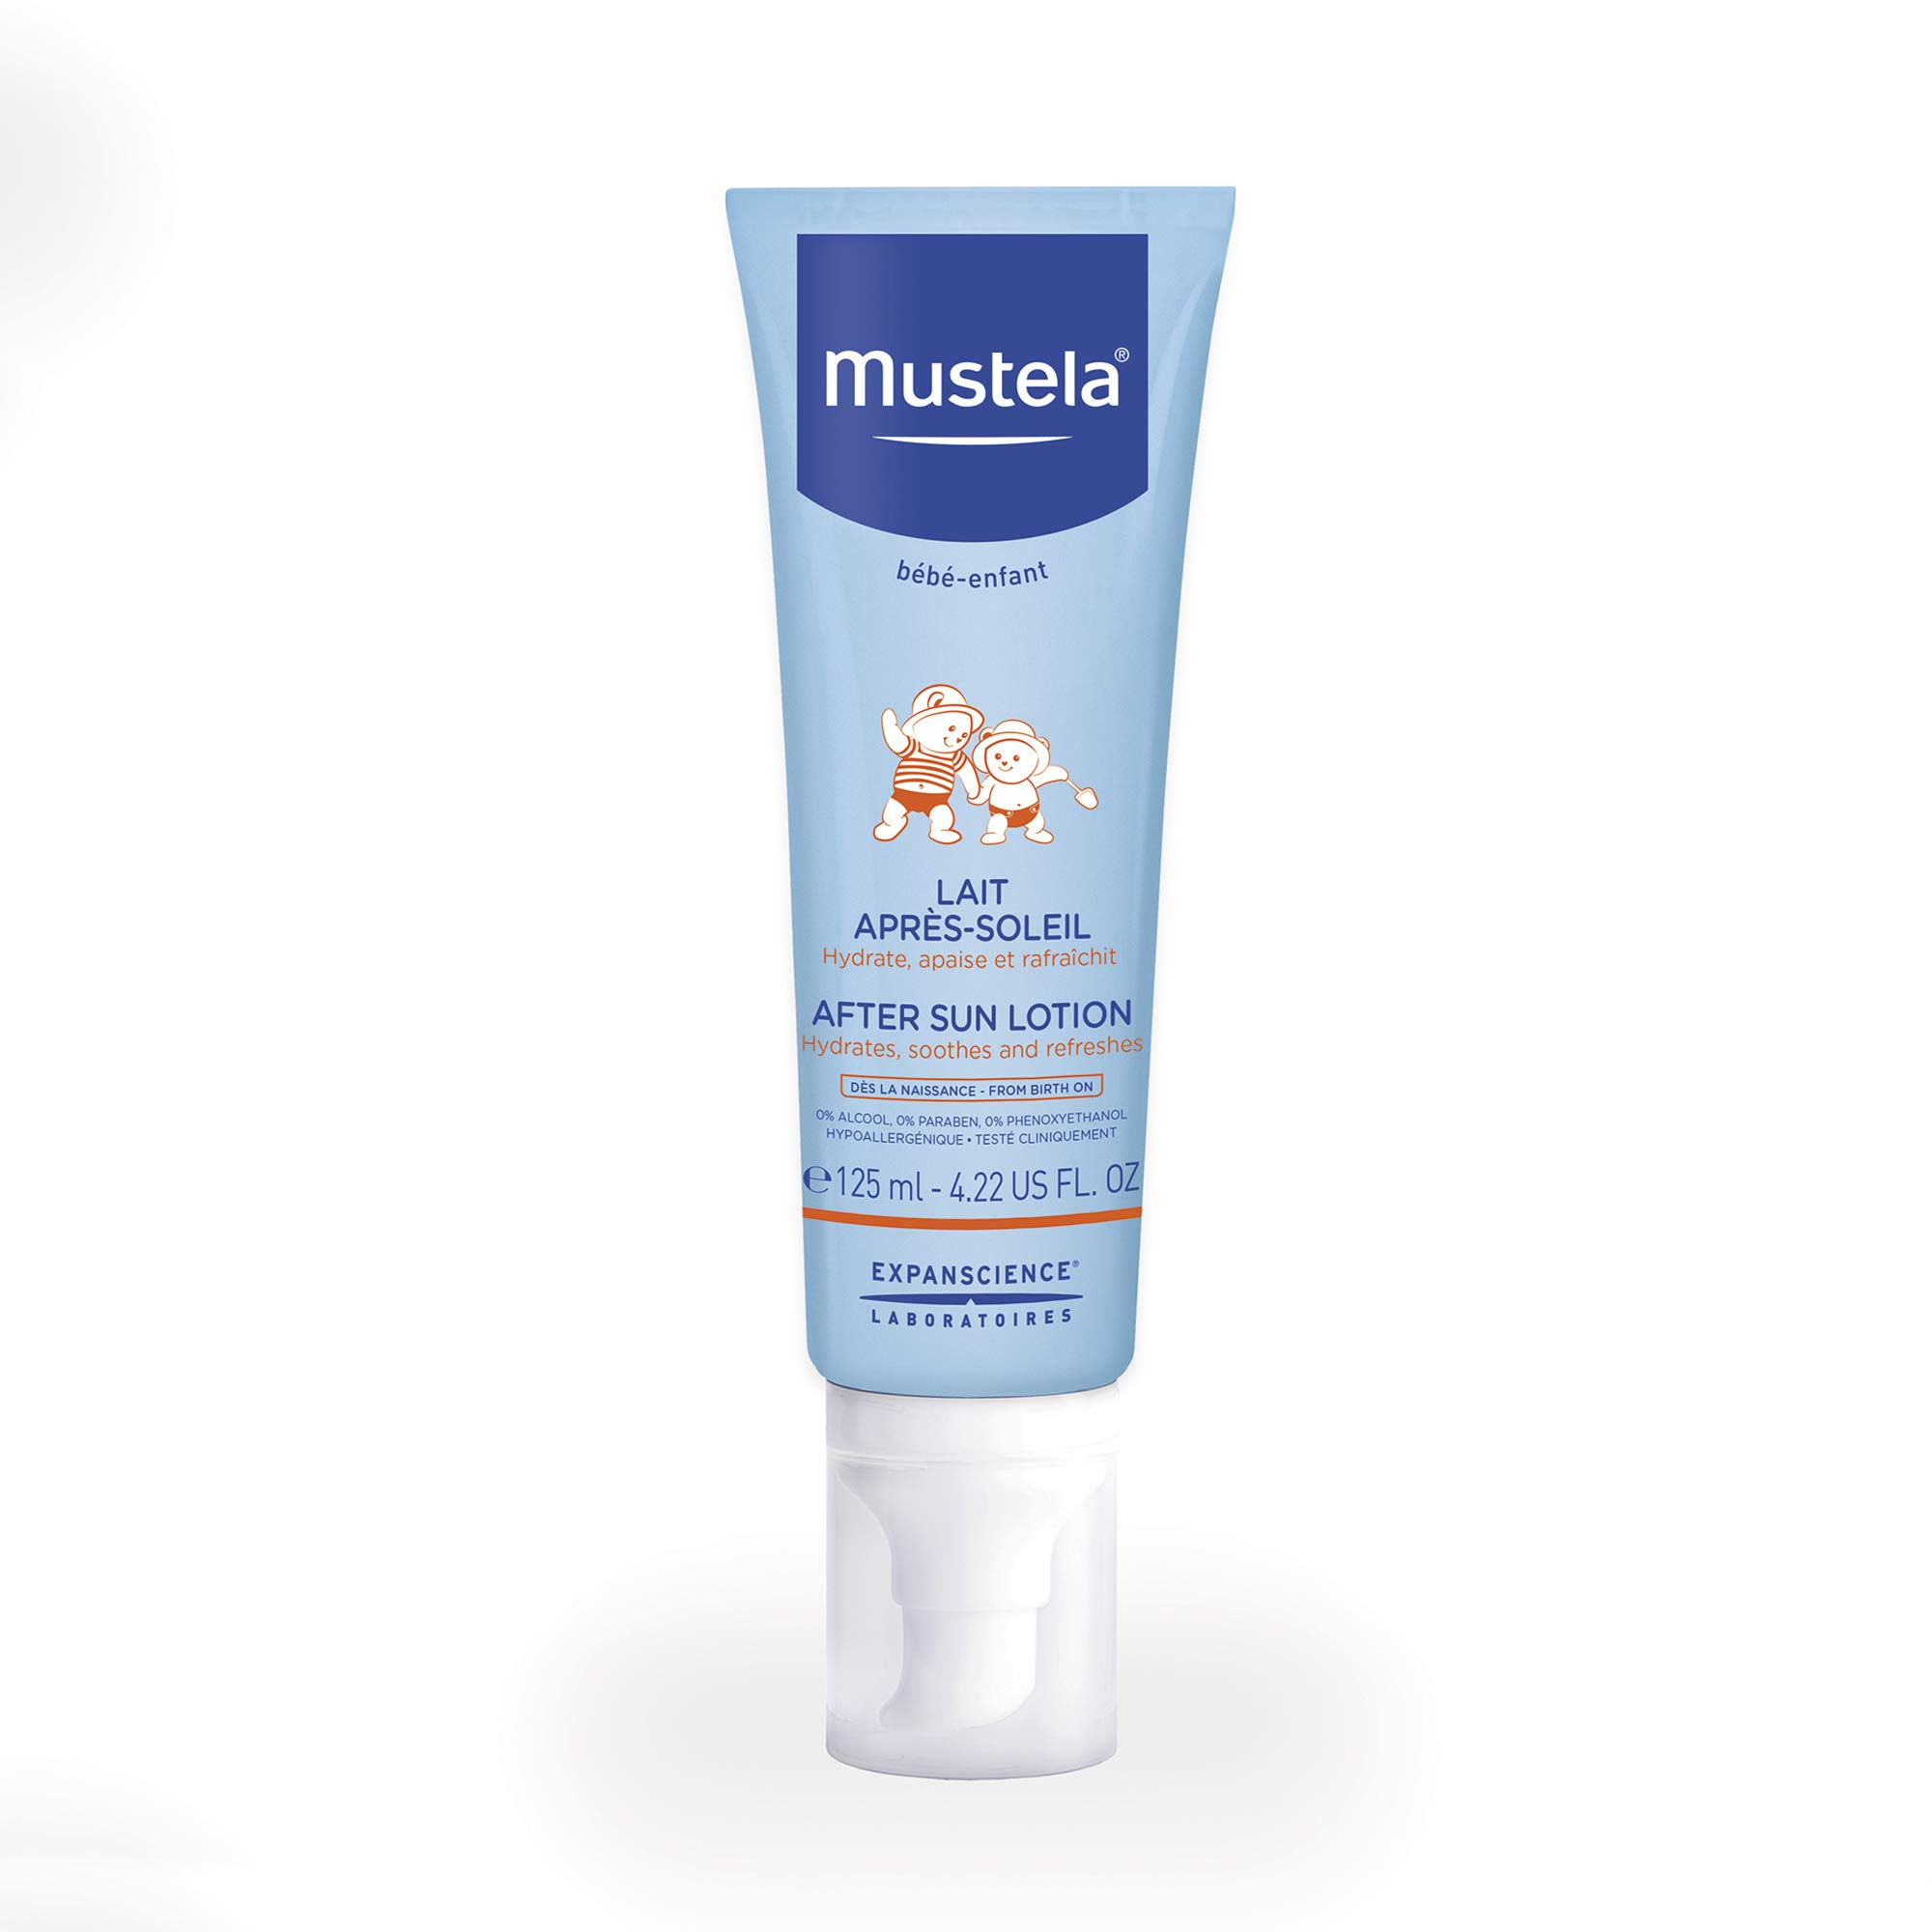 Mustela After Sun Lotion for Baby, with Natural Avocado Perseose, Soothes and Refreshes Skin, 4.22 Ounce by Mustela